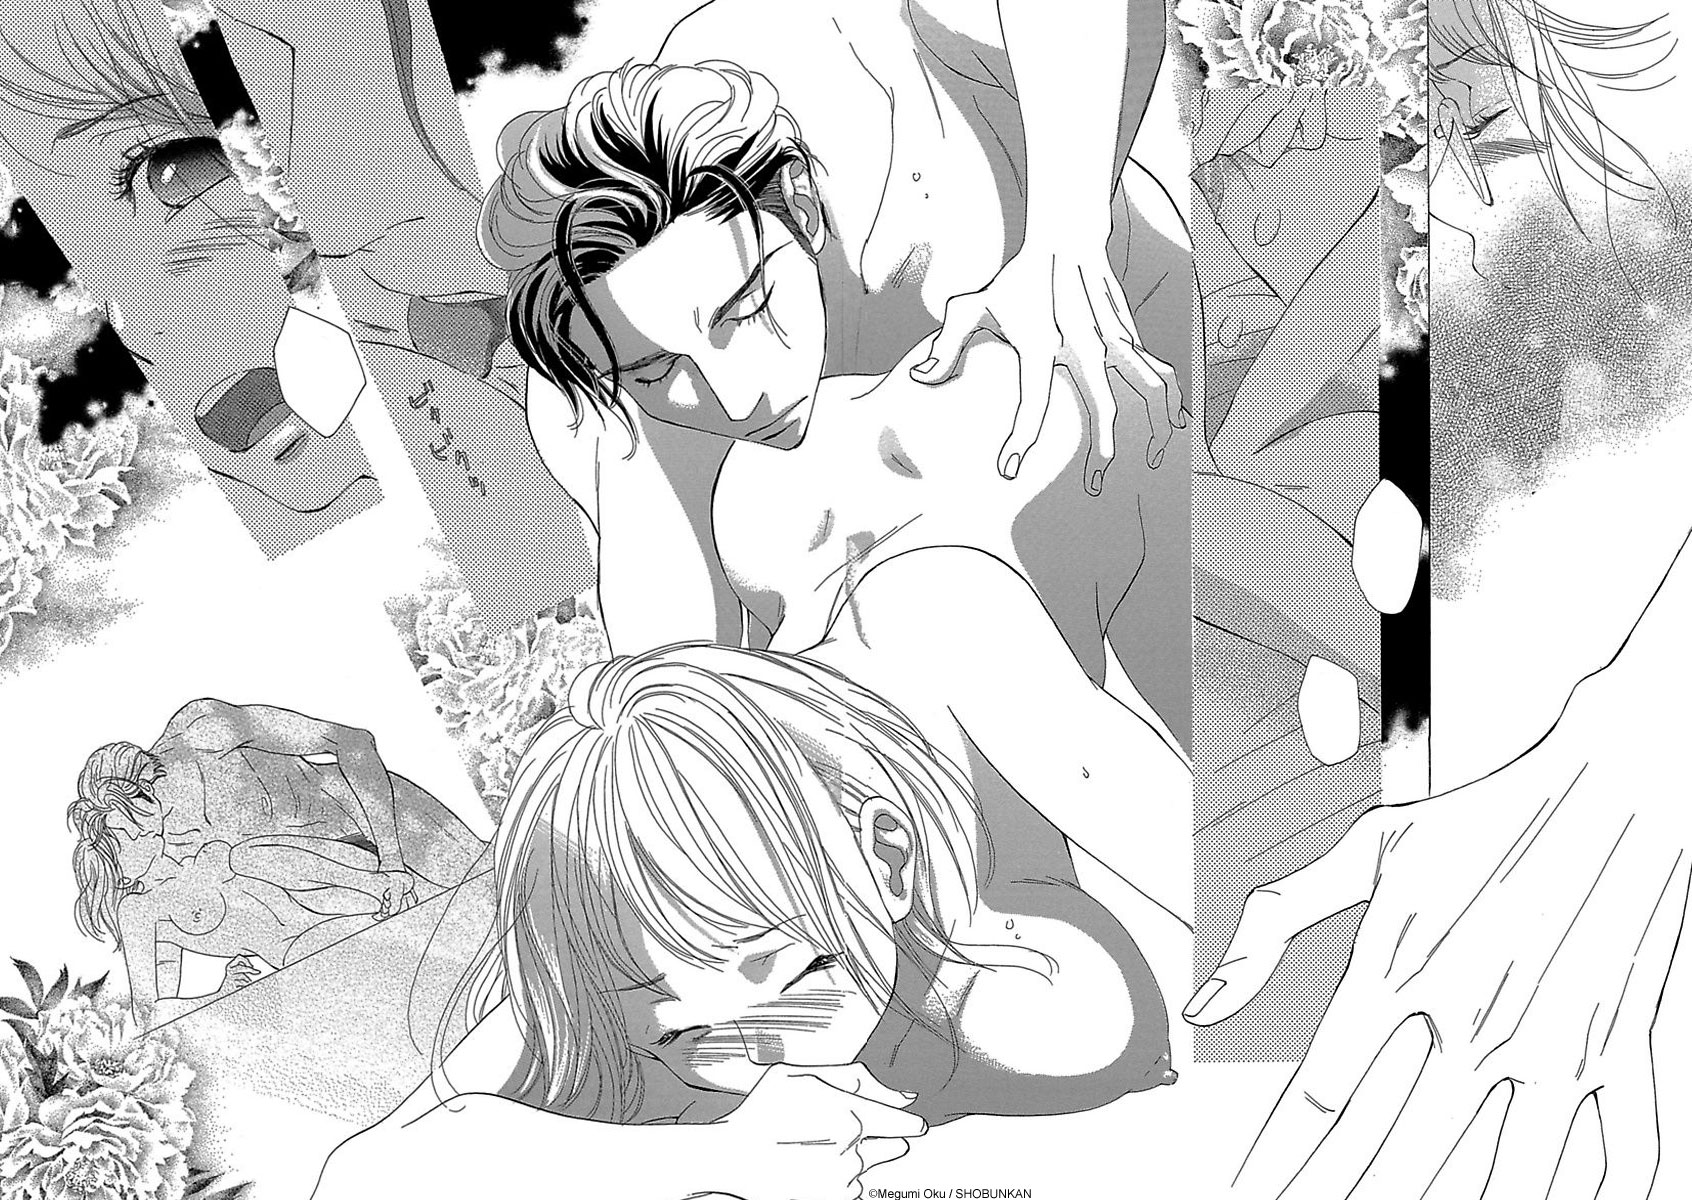 Training camp free manga erotica